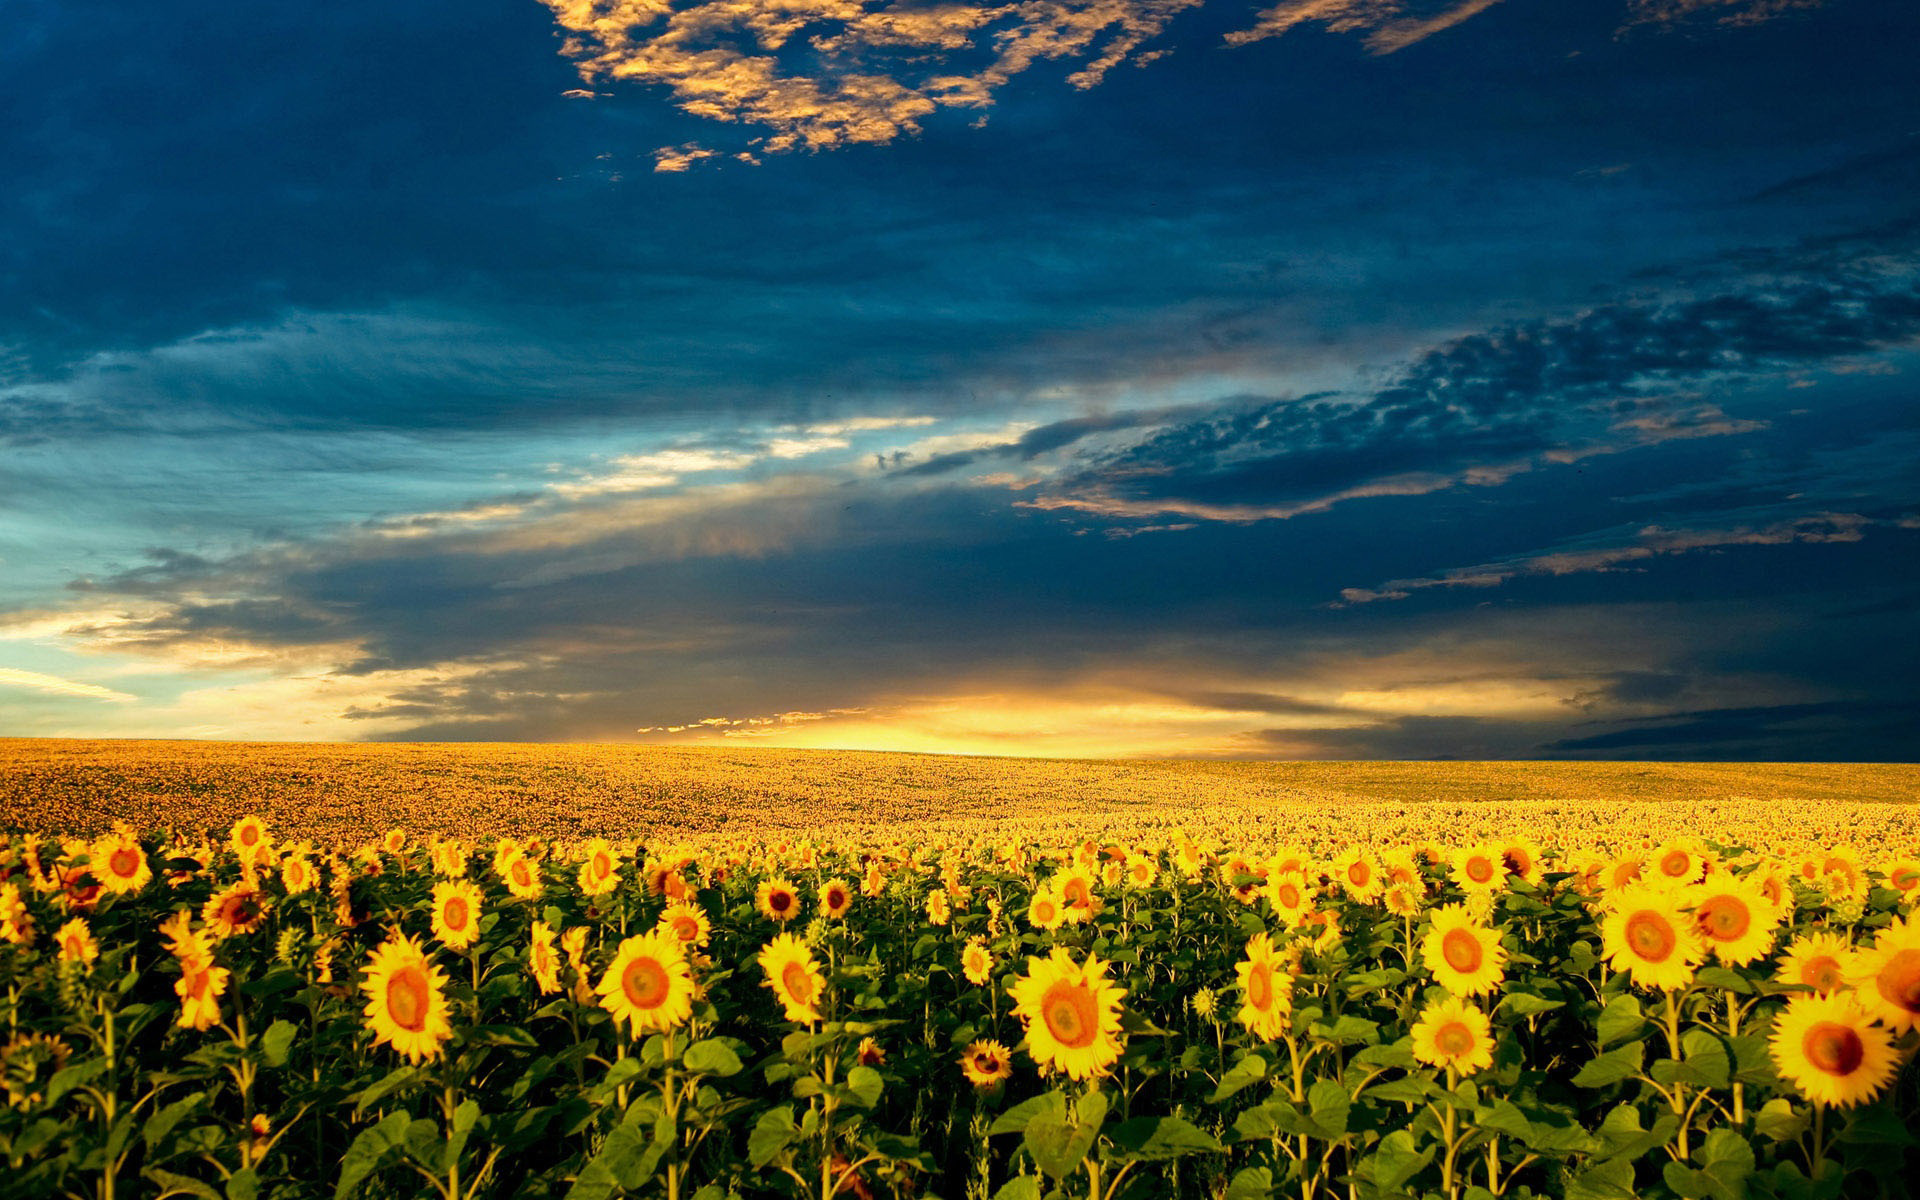 Sunflower Field   1920x1200   1610 1920x1200